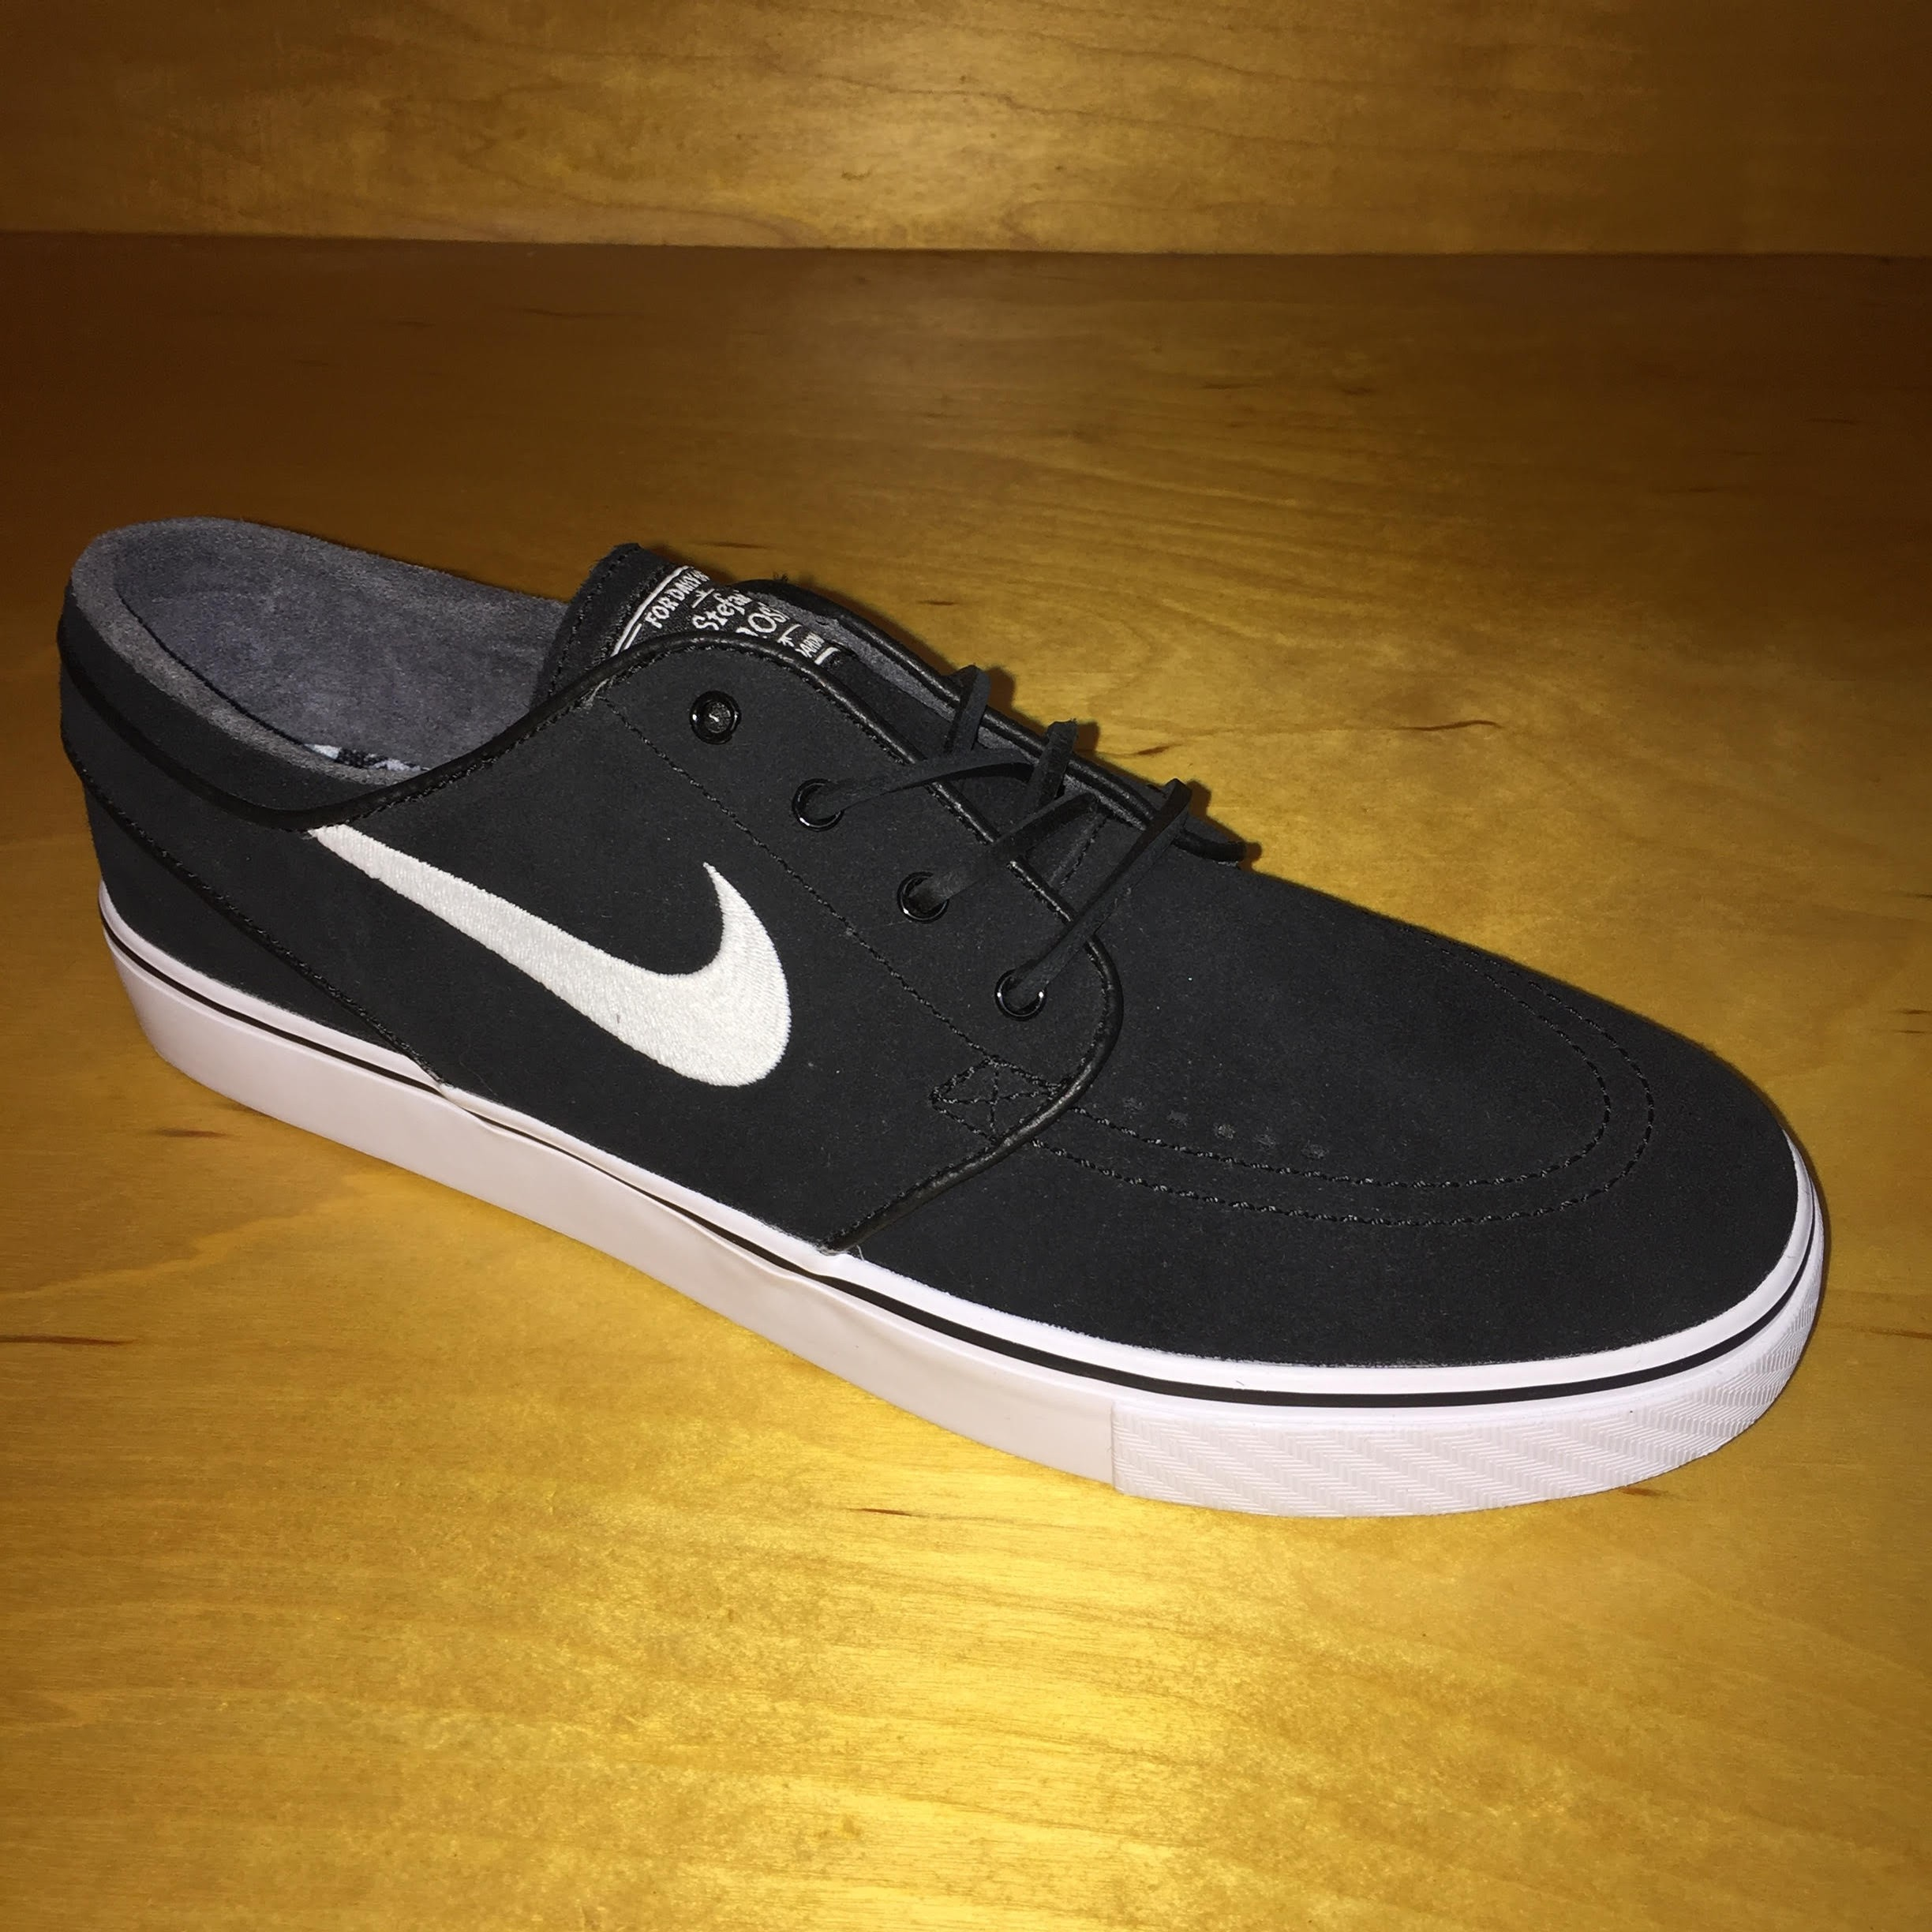 Janoski OG Black/White